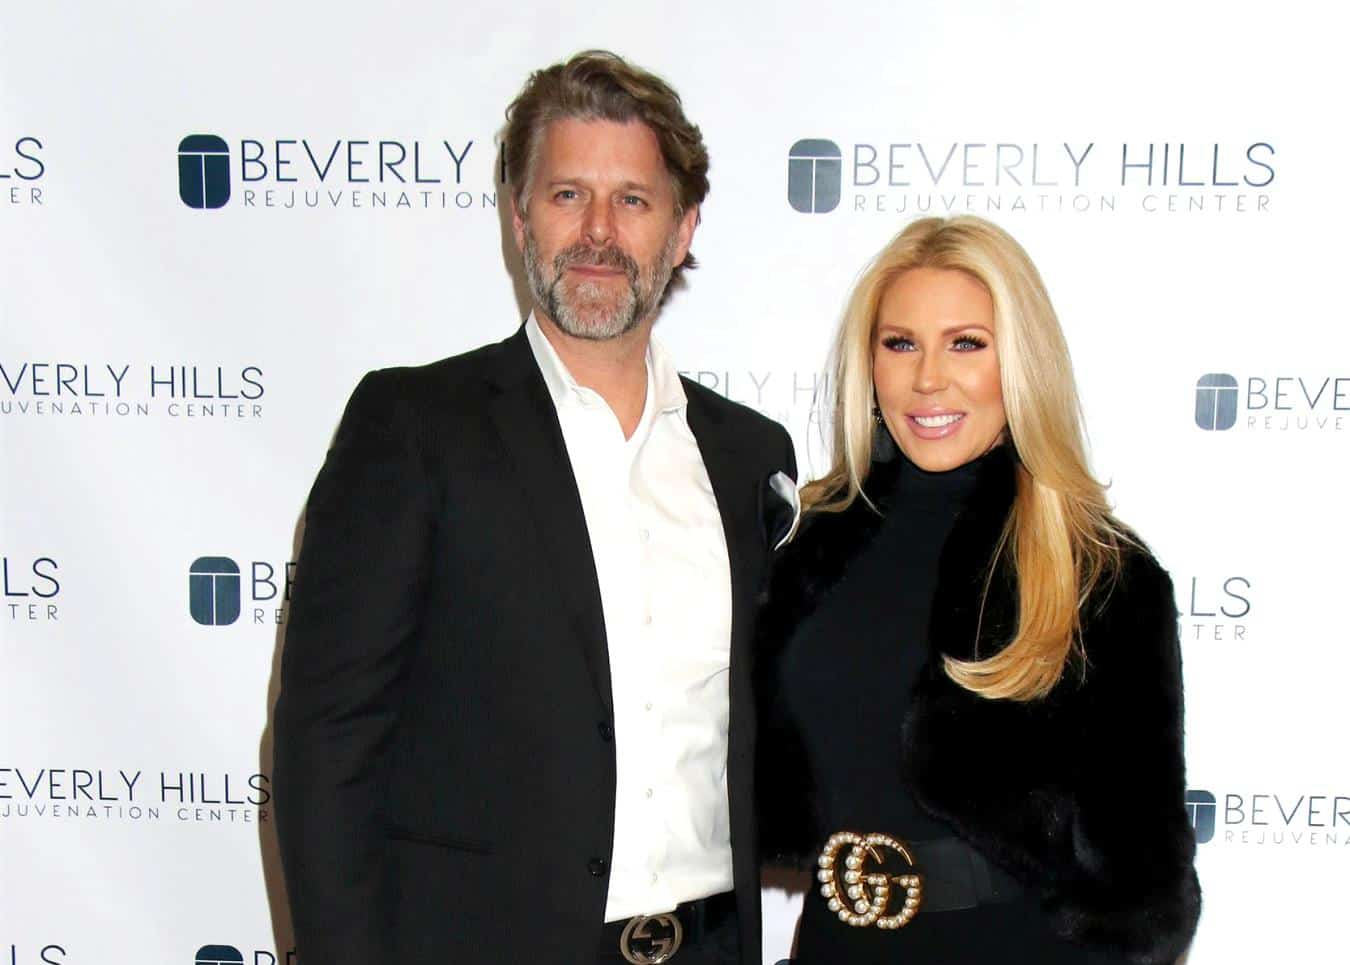 Gretchen Rossi and Slade Smiley Accused of Selling False CBD Products With Misleading Labels, See the Ex RHOC Stars' Response